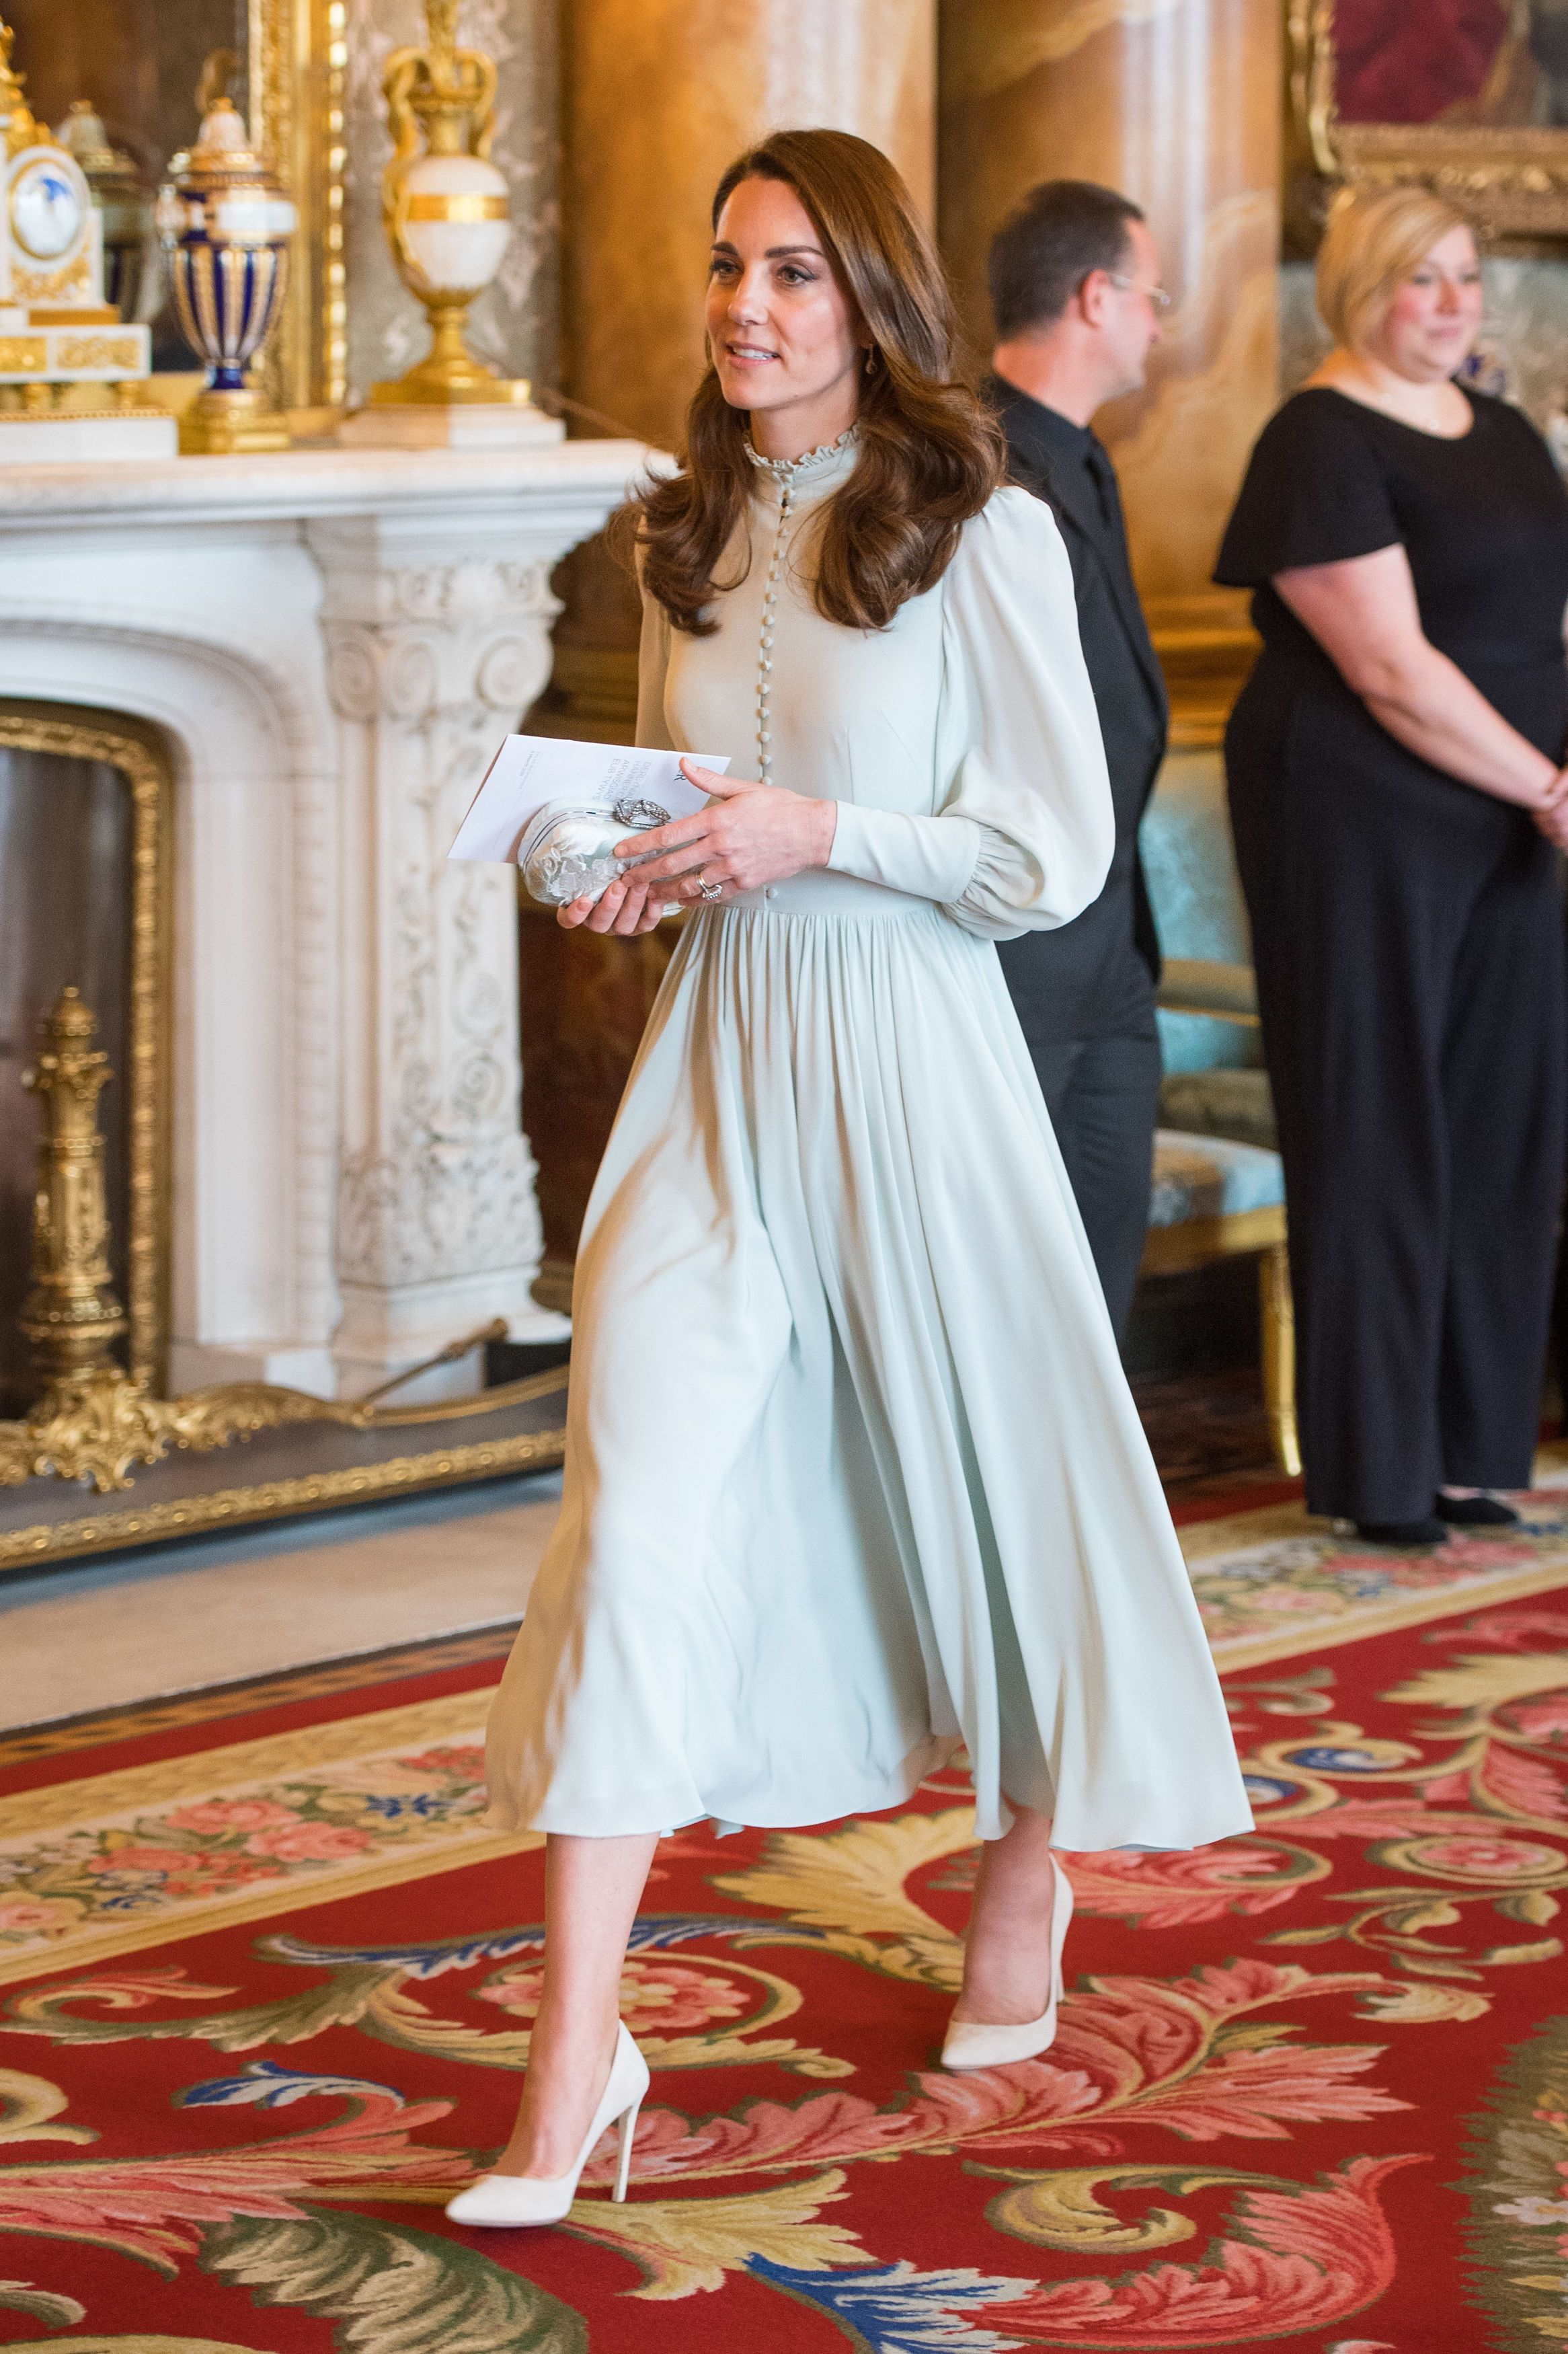 f9226392e307 Kate Middleton's Best Fashion Looks - Duchess of Cambridge's Chic Outfits